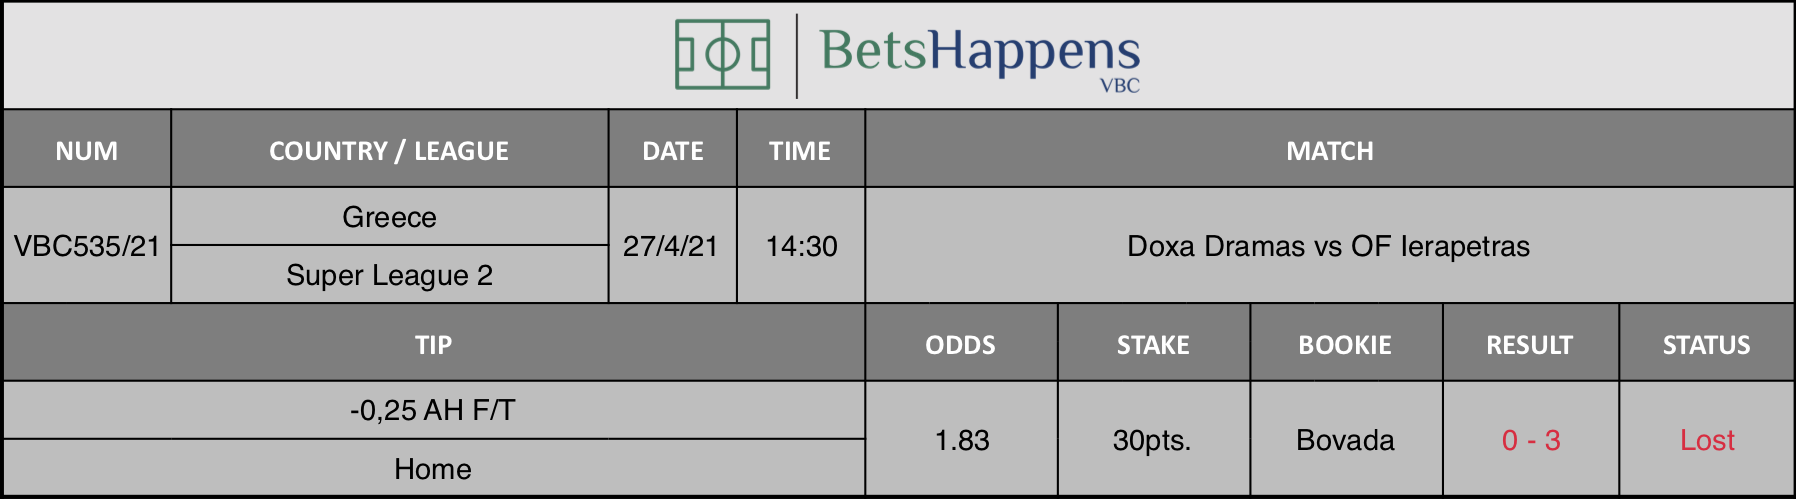 Results of our tip for the Doxa Dramas vs OF Ierapetras match where -0,25 AH F/T Home is recommended.